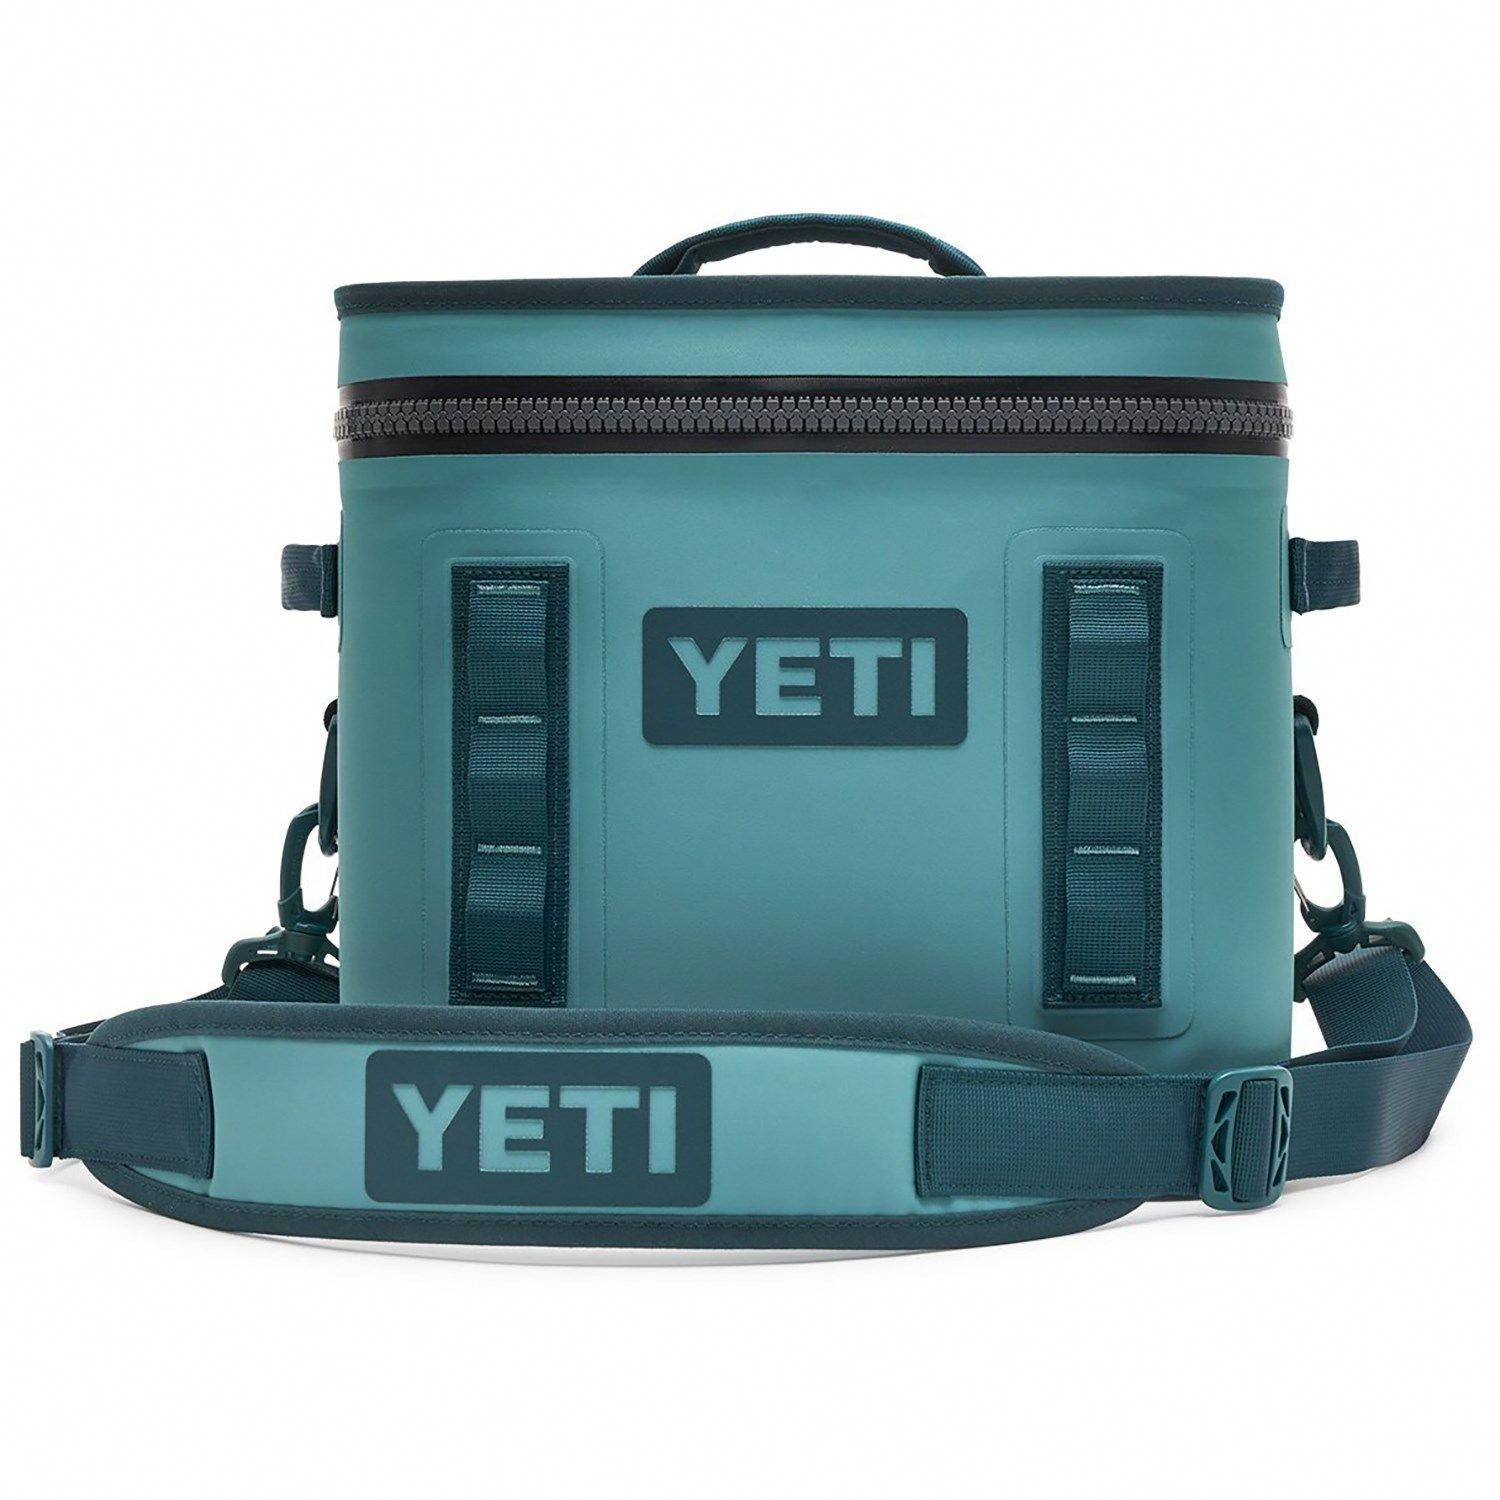 Yeti Hopper Flip 12 Cooler With Top Handle 2019 In Green In 2020 Soft Cooler Portable Cooler Yeti